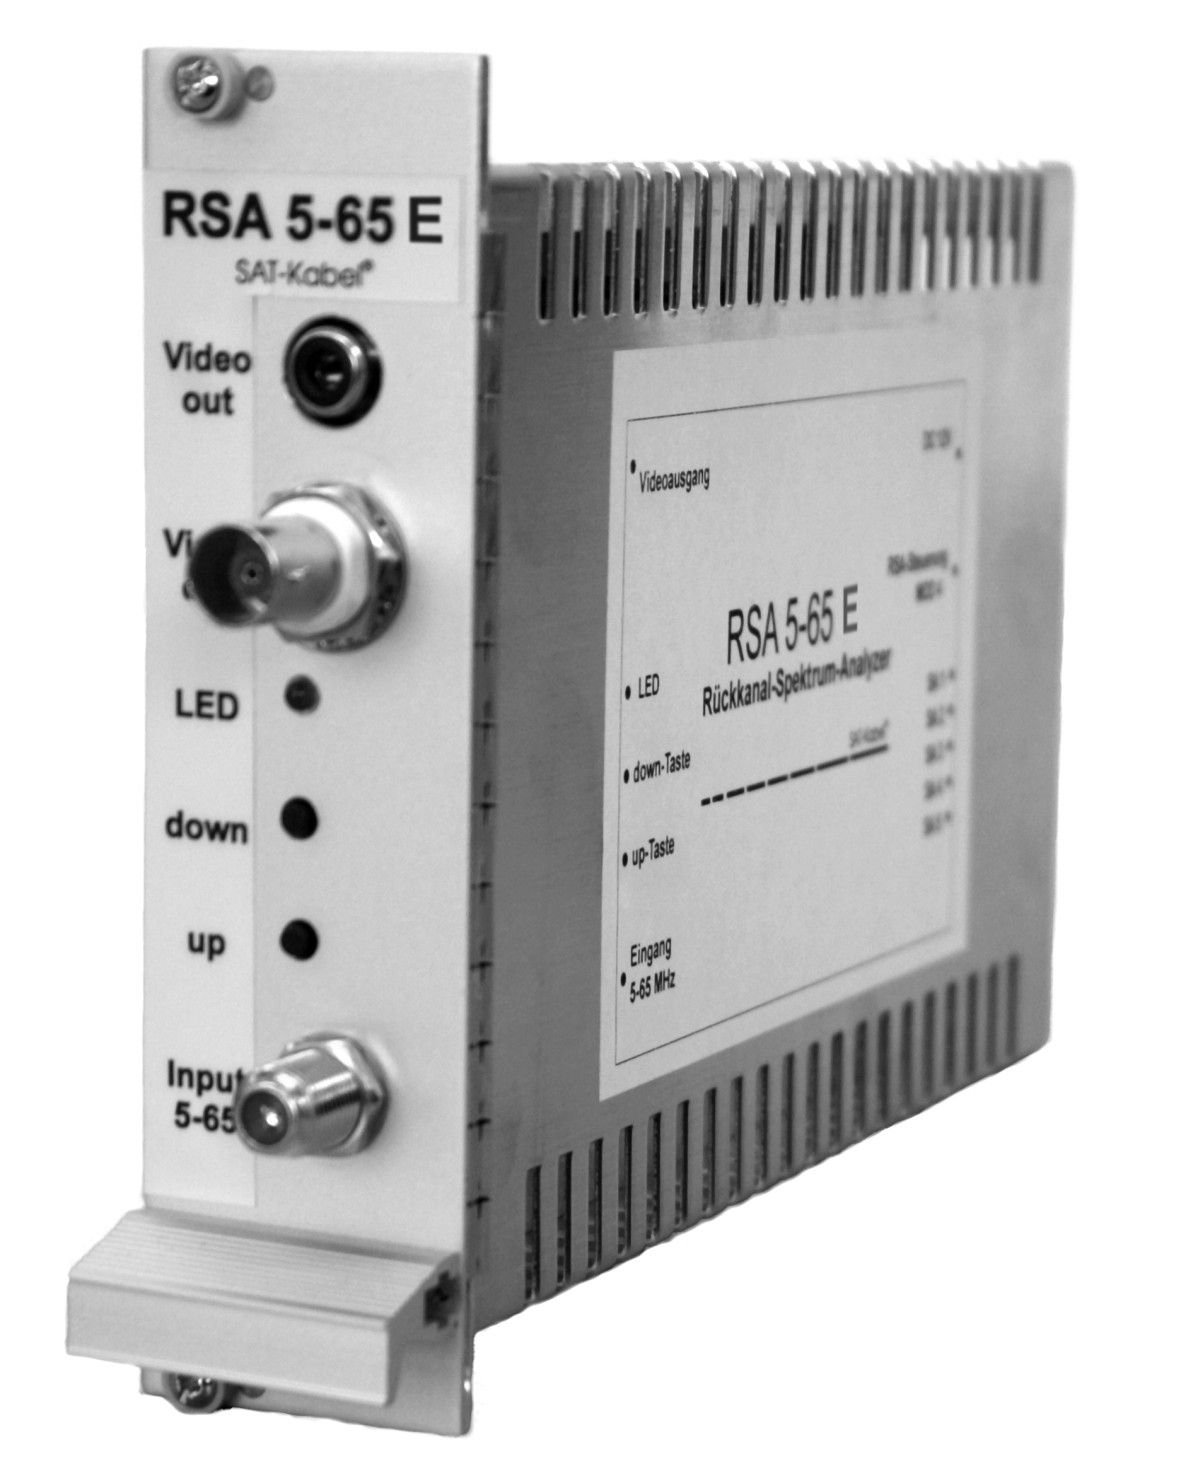 RSA 5-65 E - Rückkanal-Spektrum-Analyzer